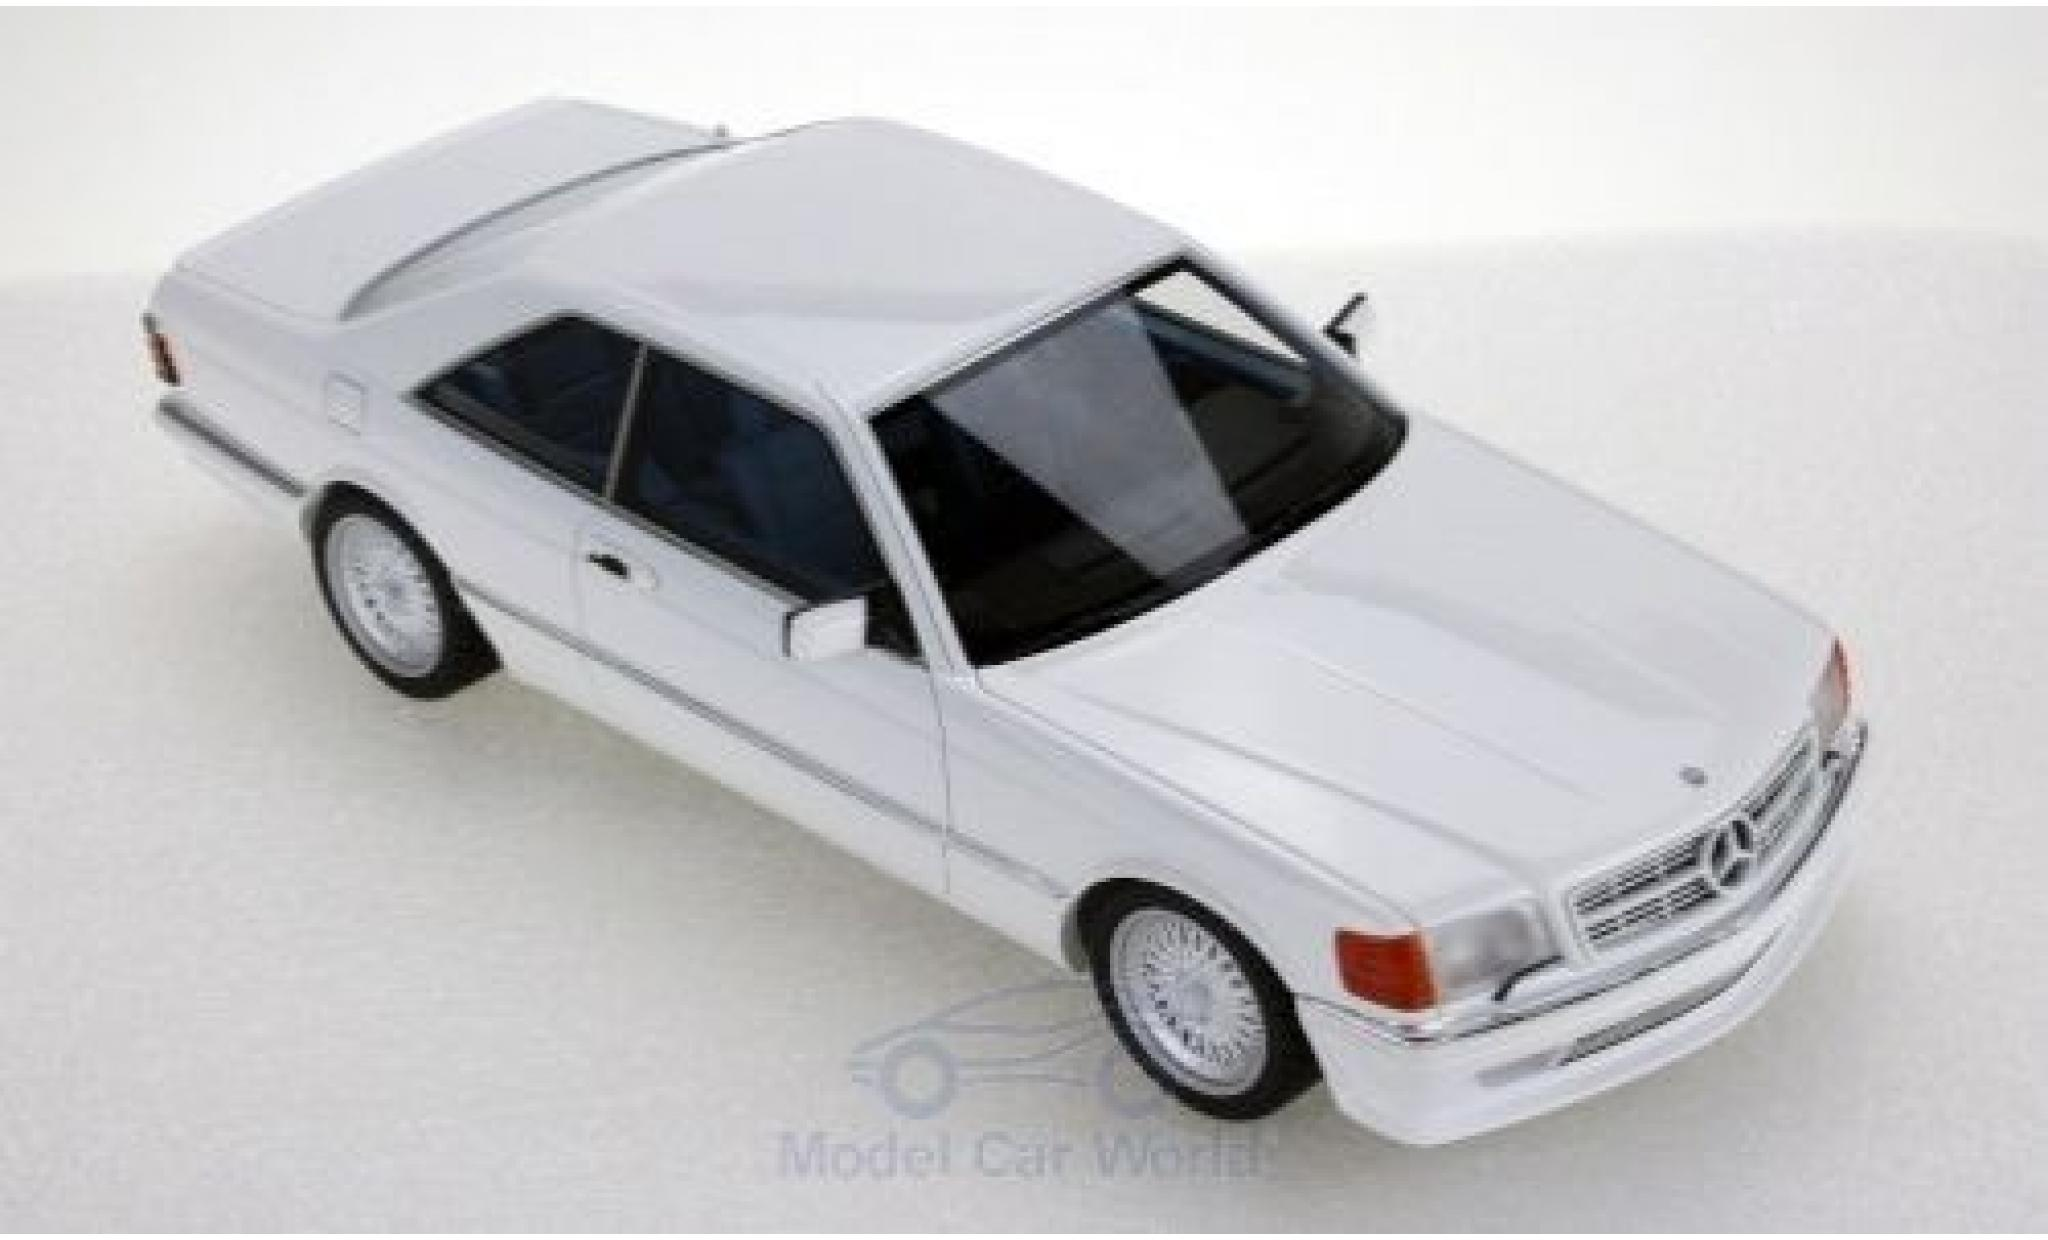 Mercedes 560 1/18 Lucky Step Models SEC (C126) Lorinser white 1987